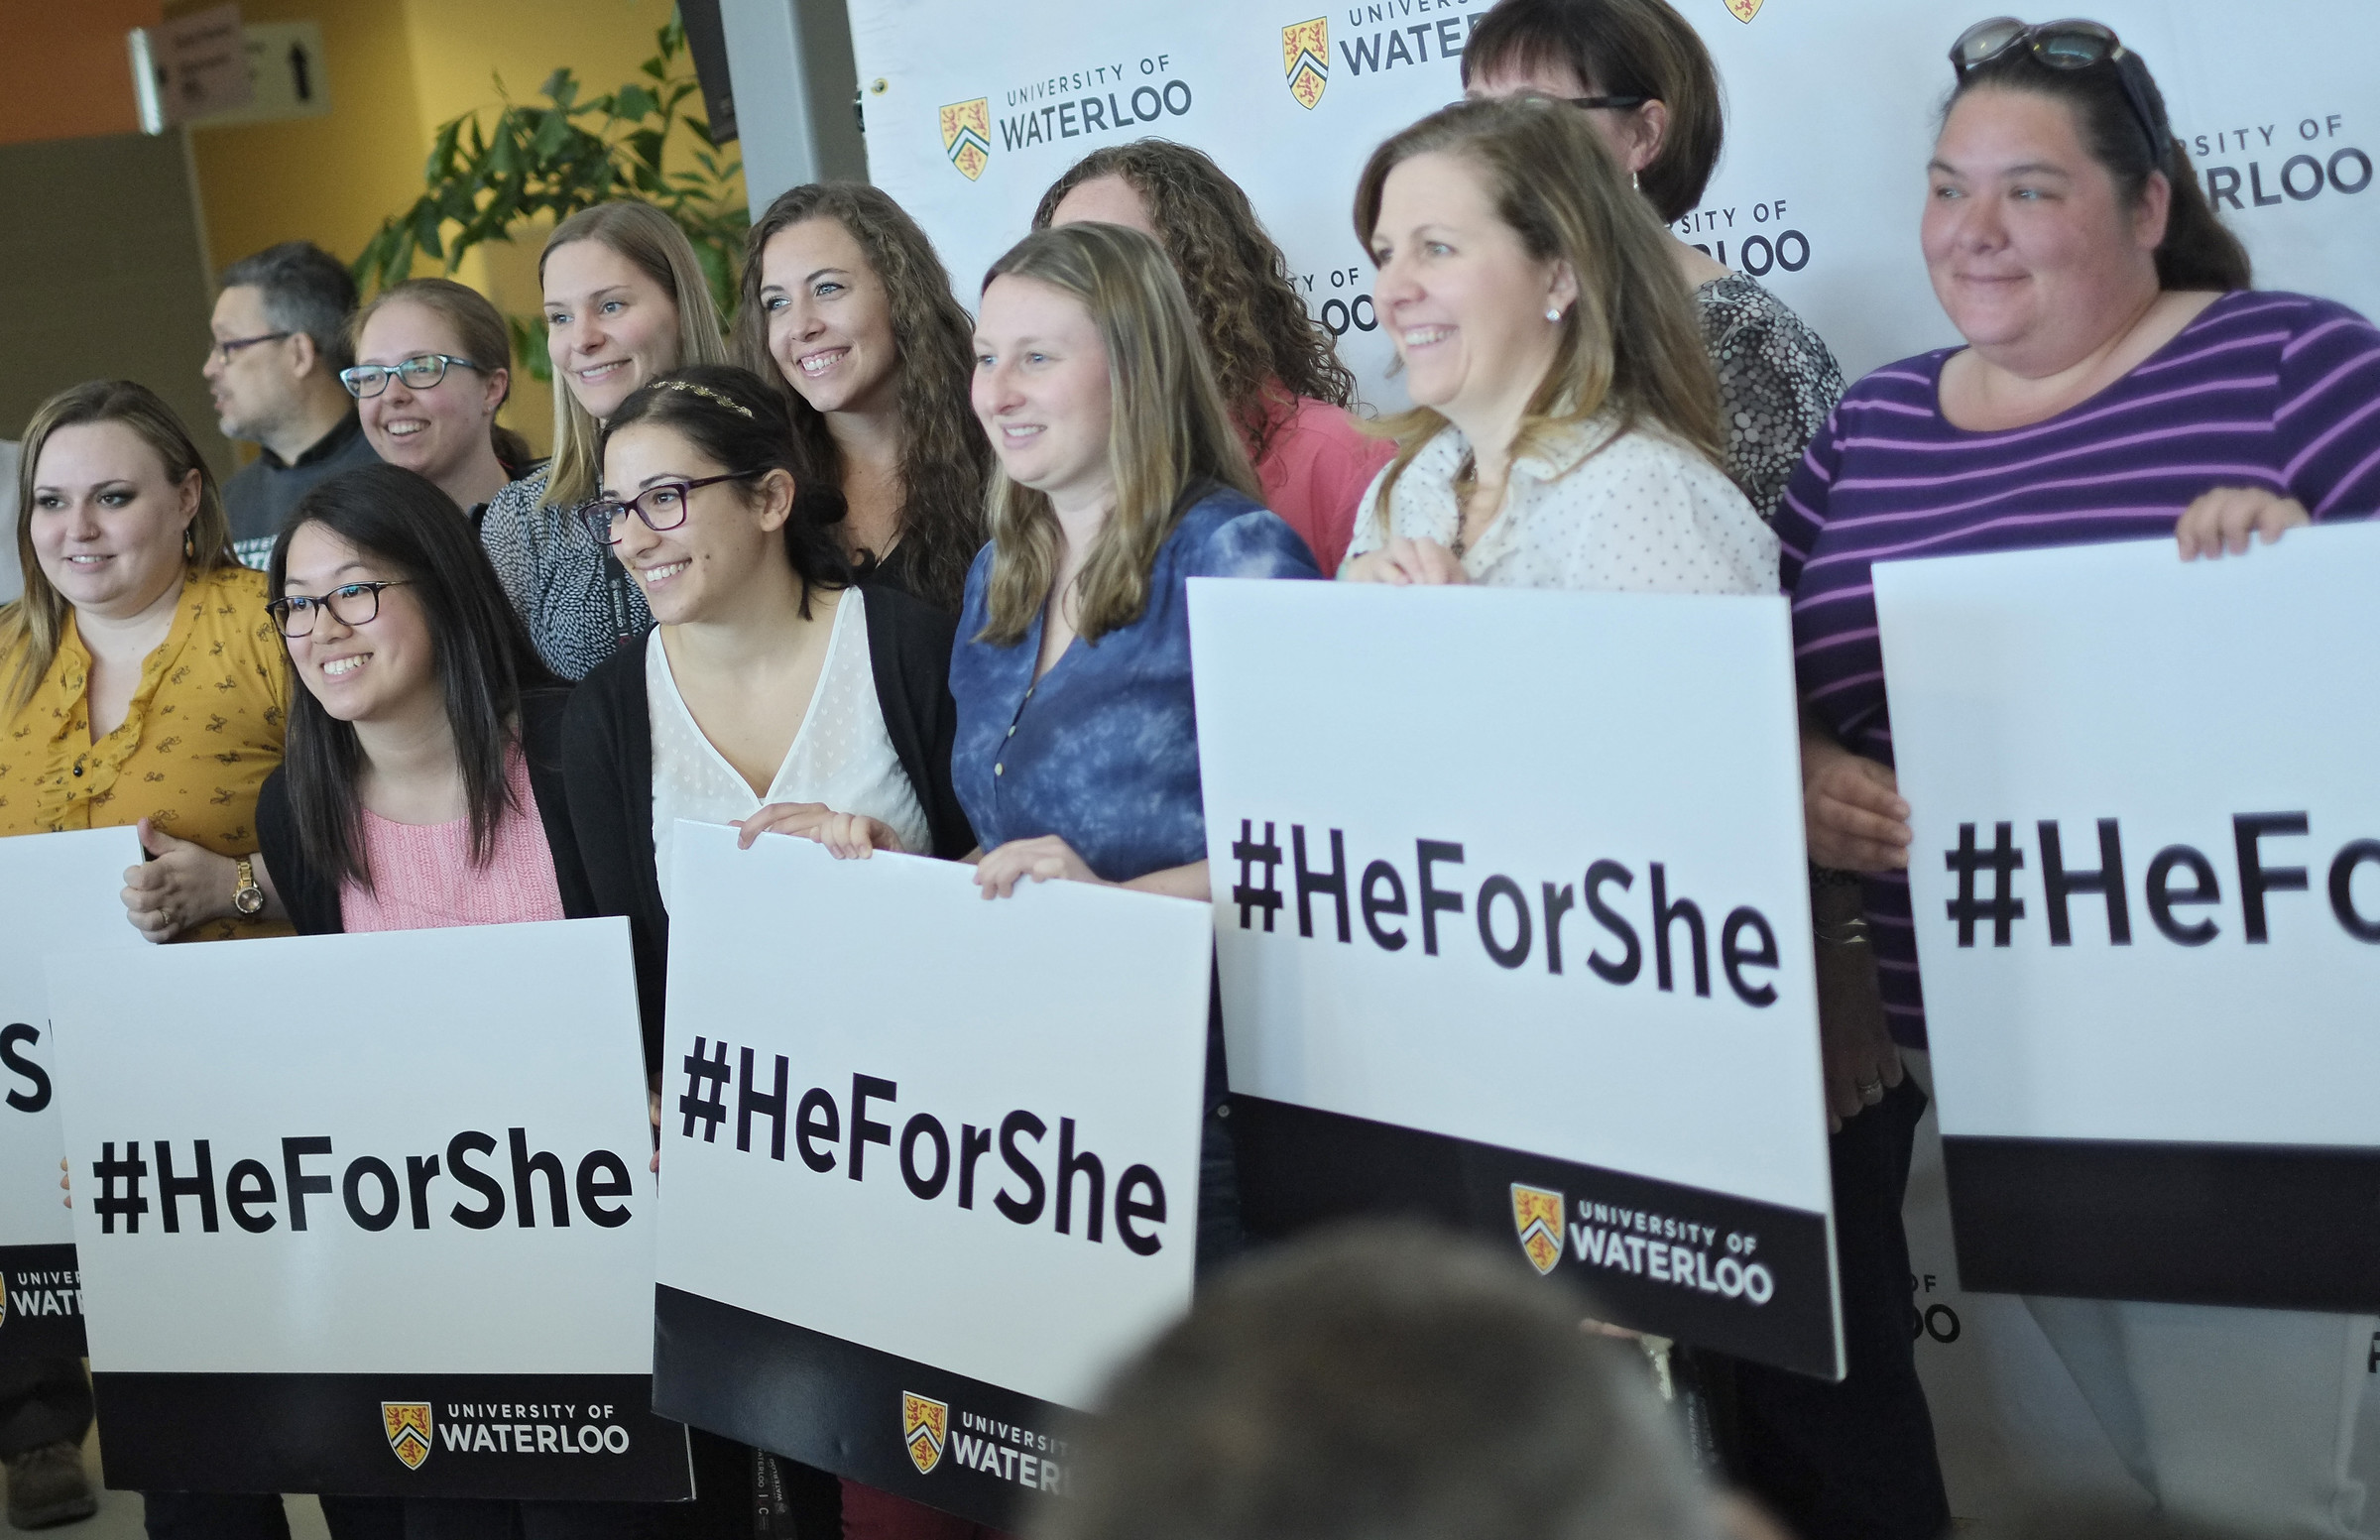 HeForShe supports at Waterloo